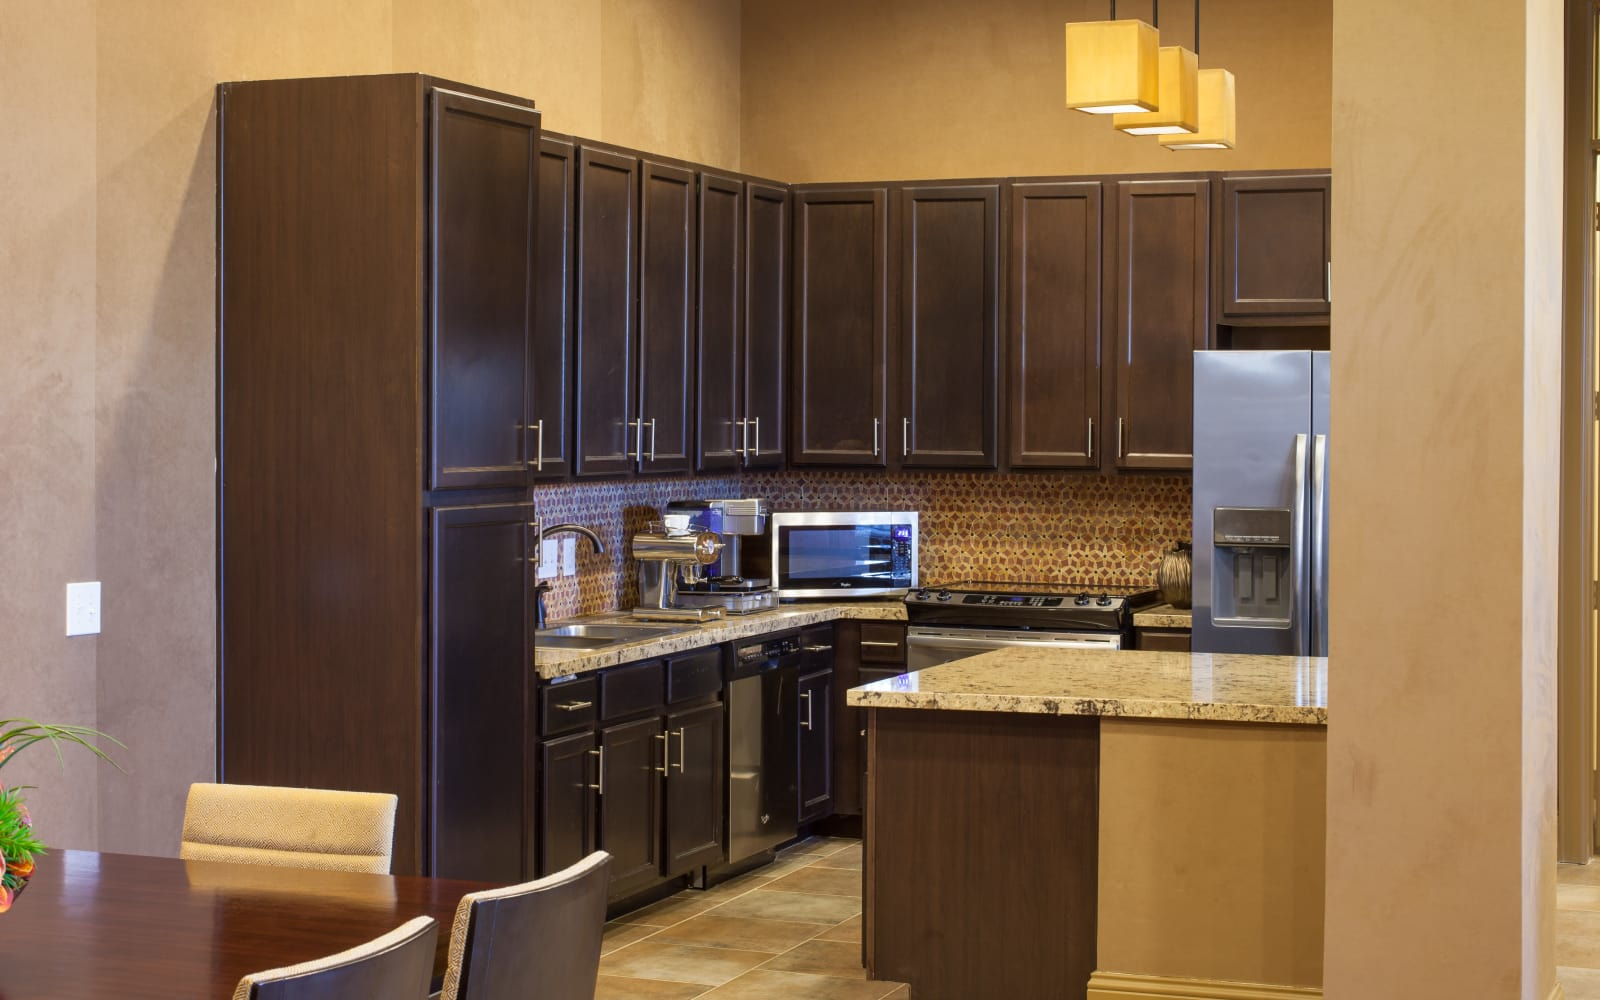 Kitchen at The High Grove in Baton Rouge, Louisiana